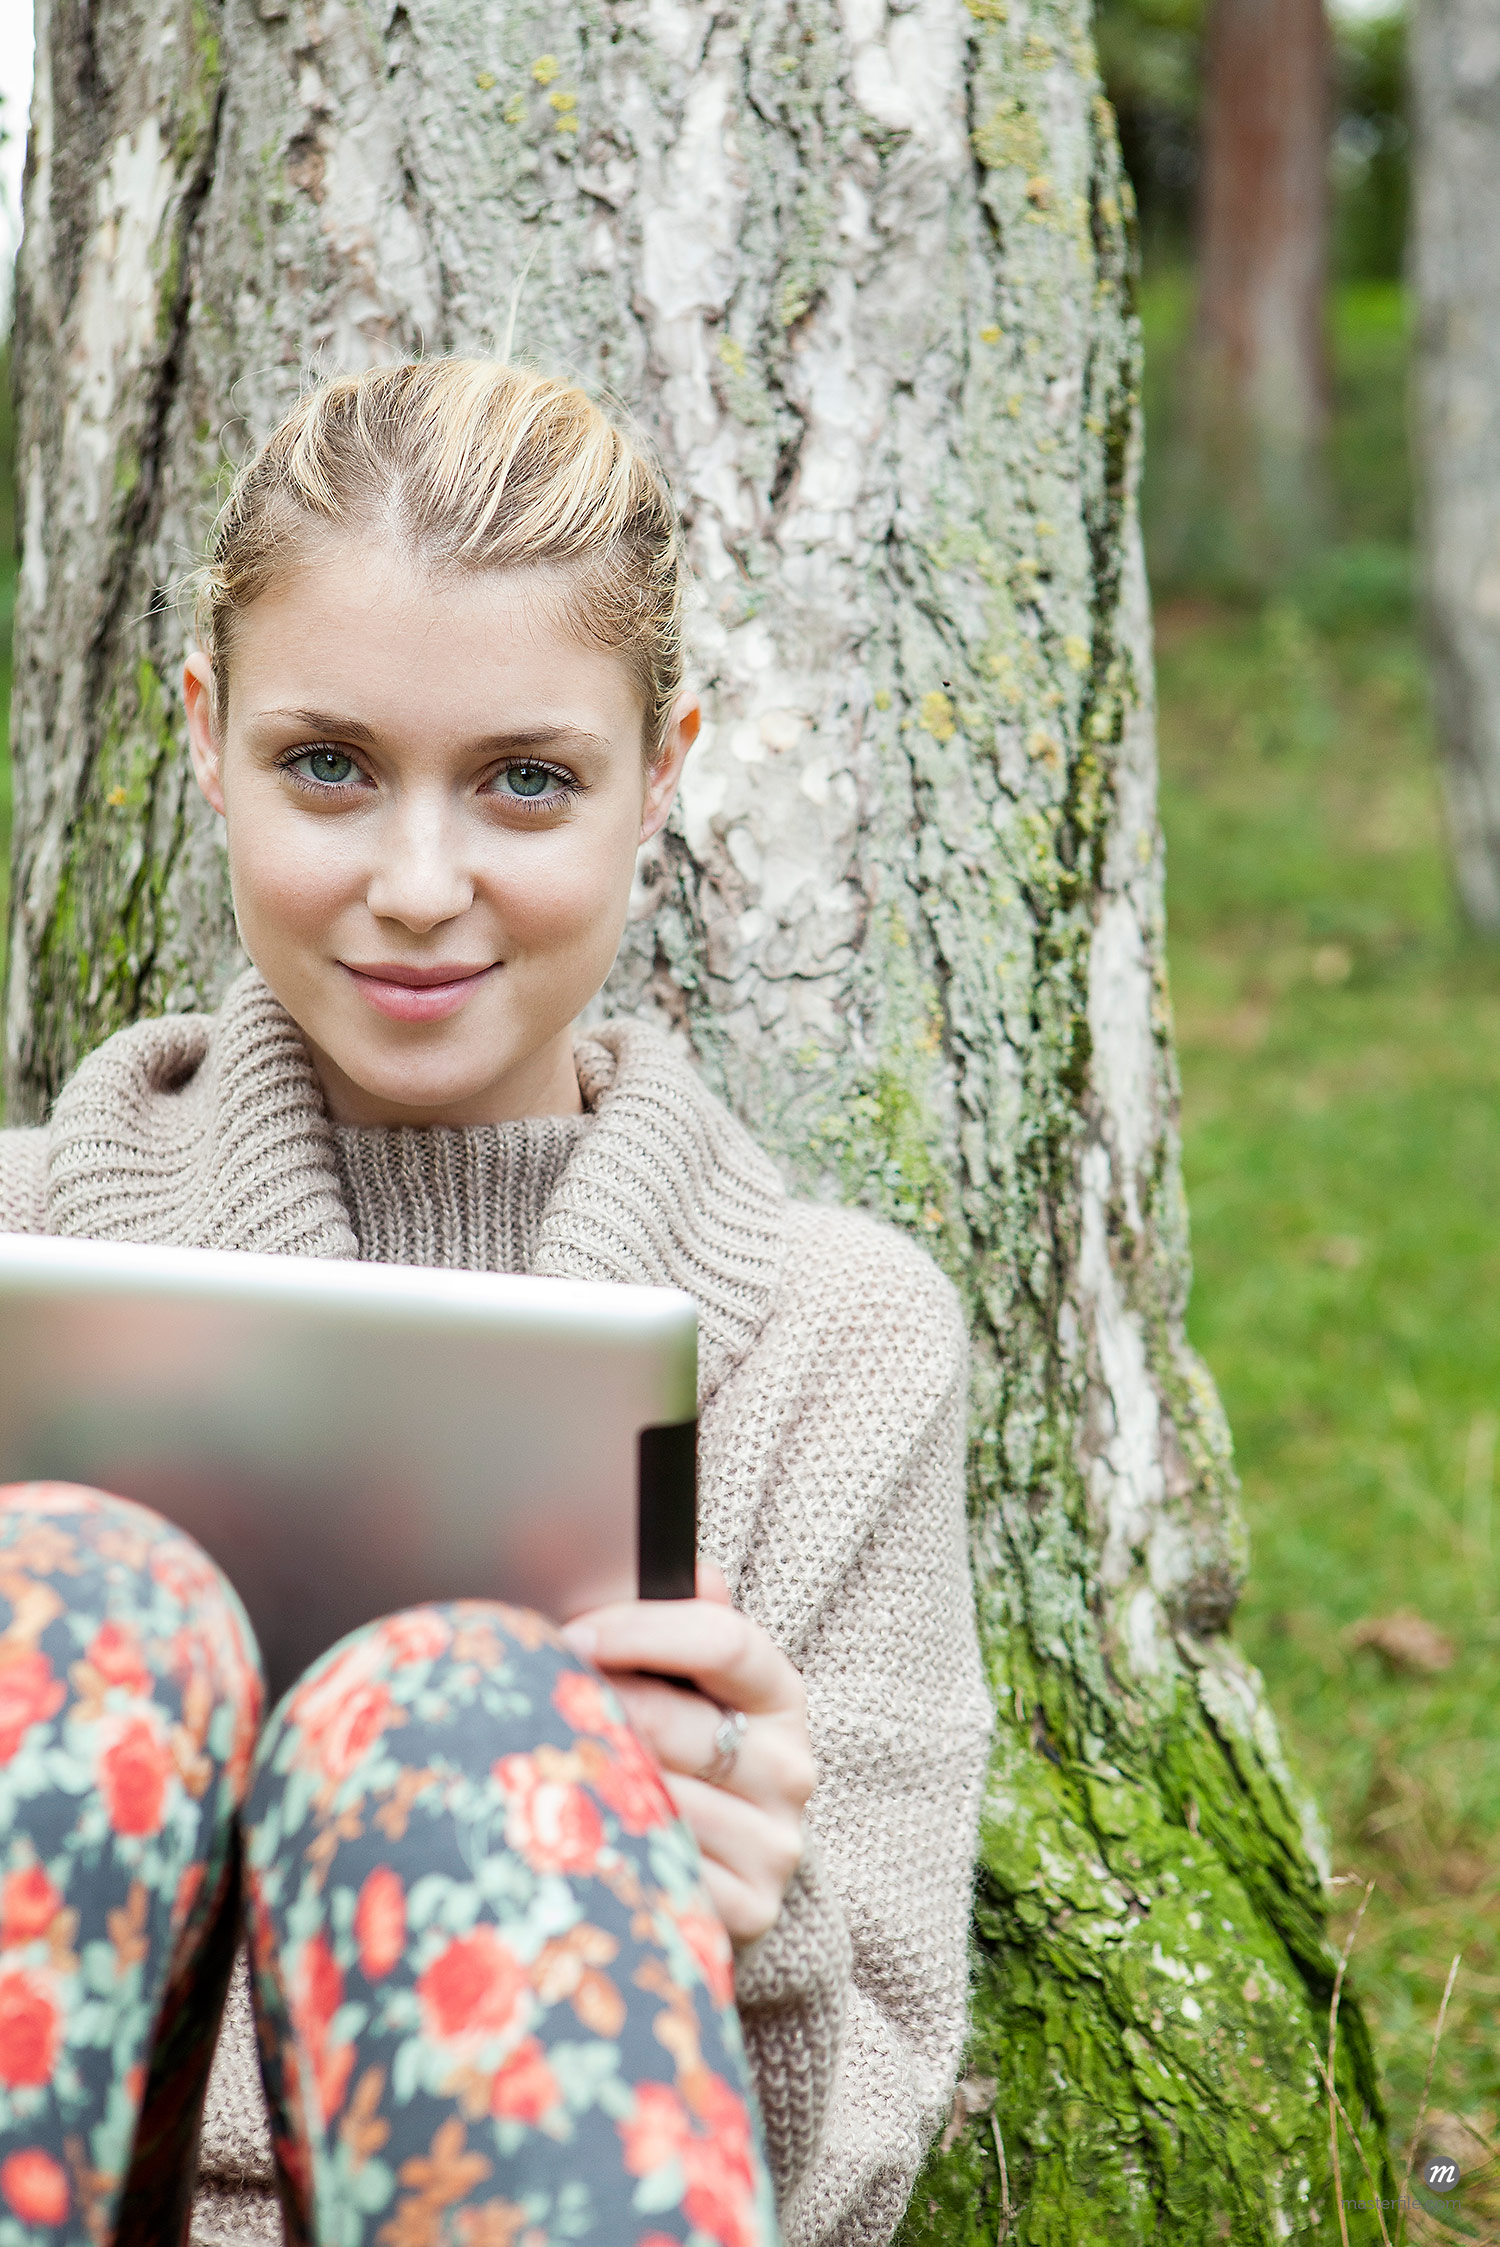 Woman outdoors leaning against tree using digital tablet  © Masterfile